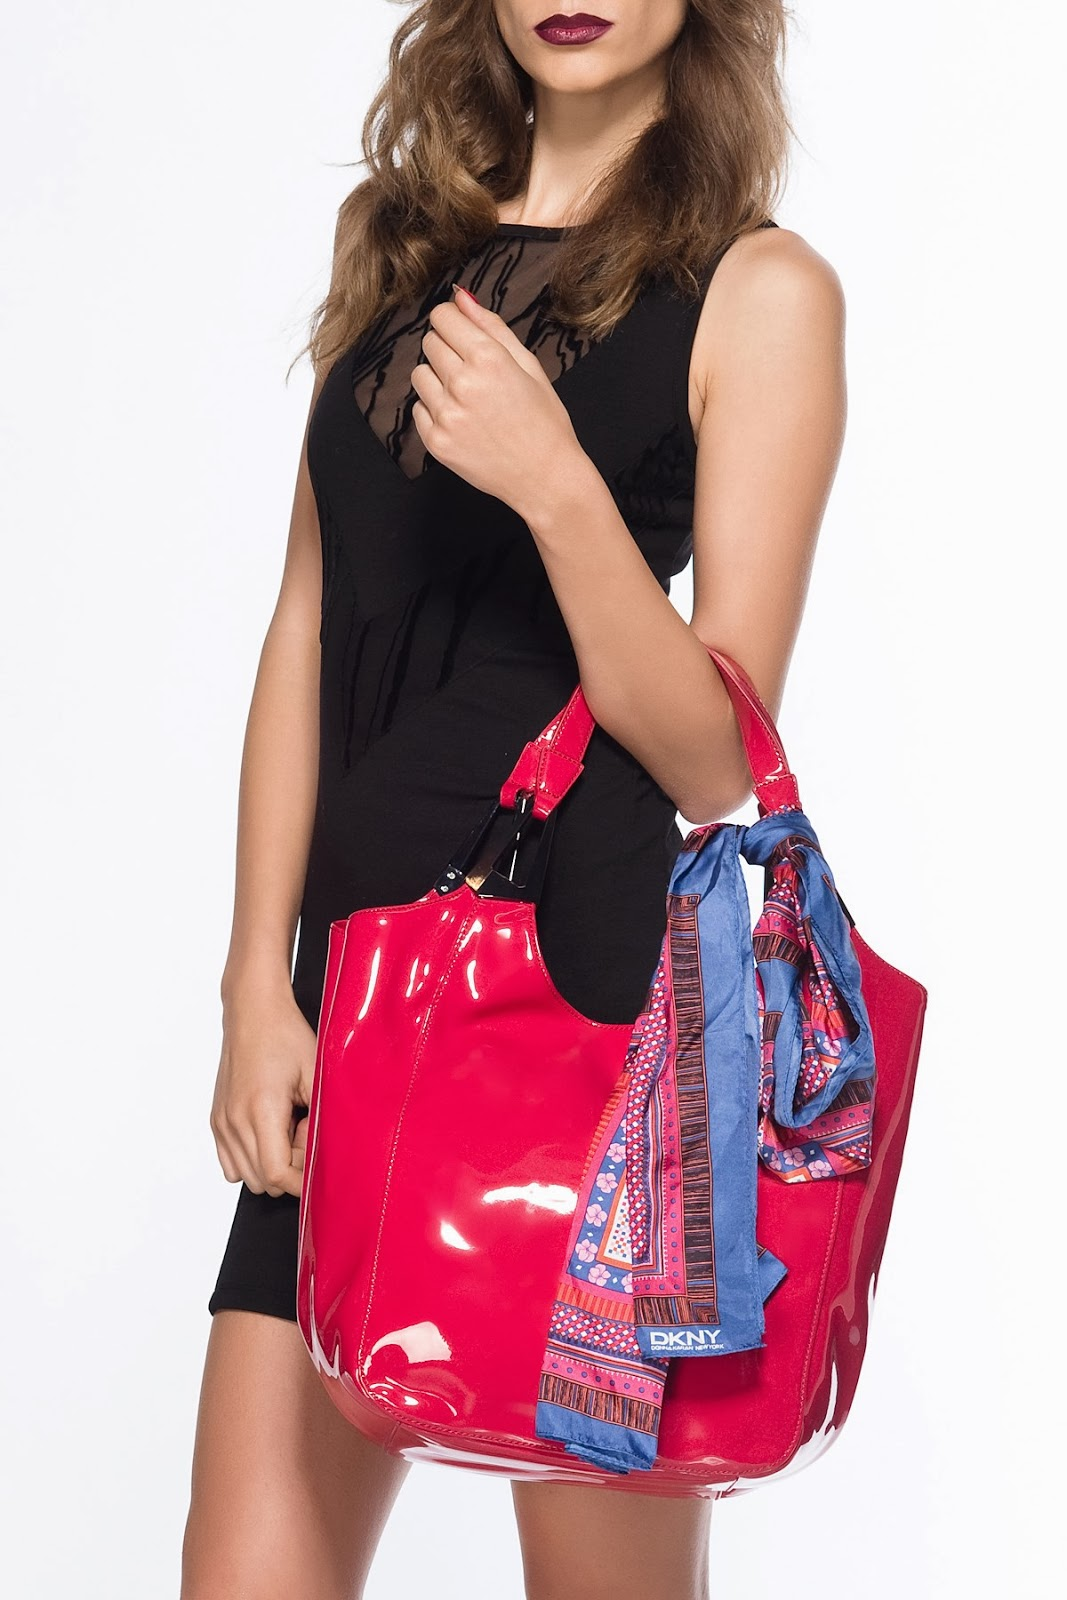 sembrono: DKNY ladies bag models, models 2014 summer